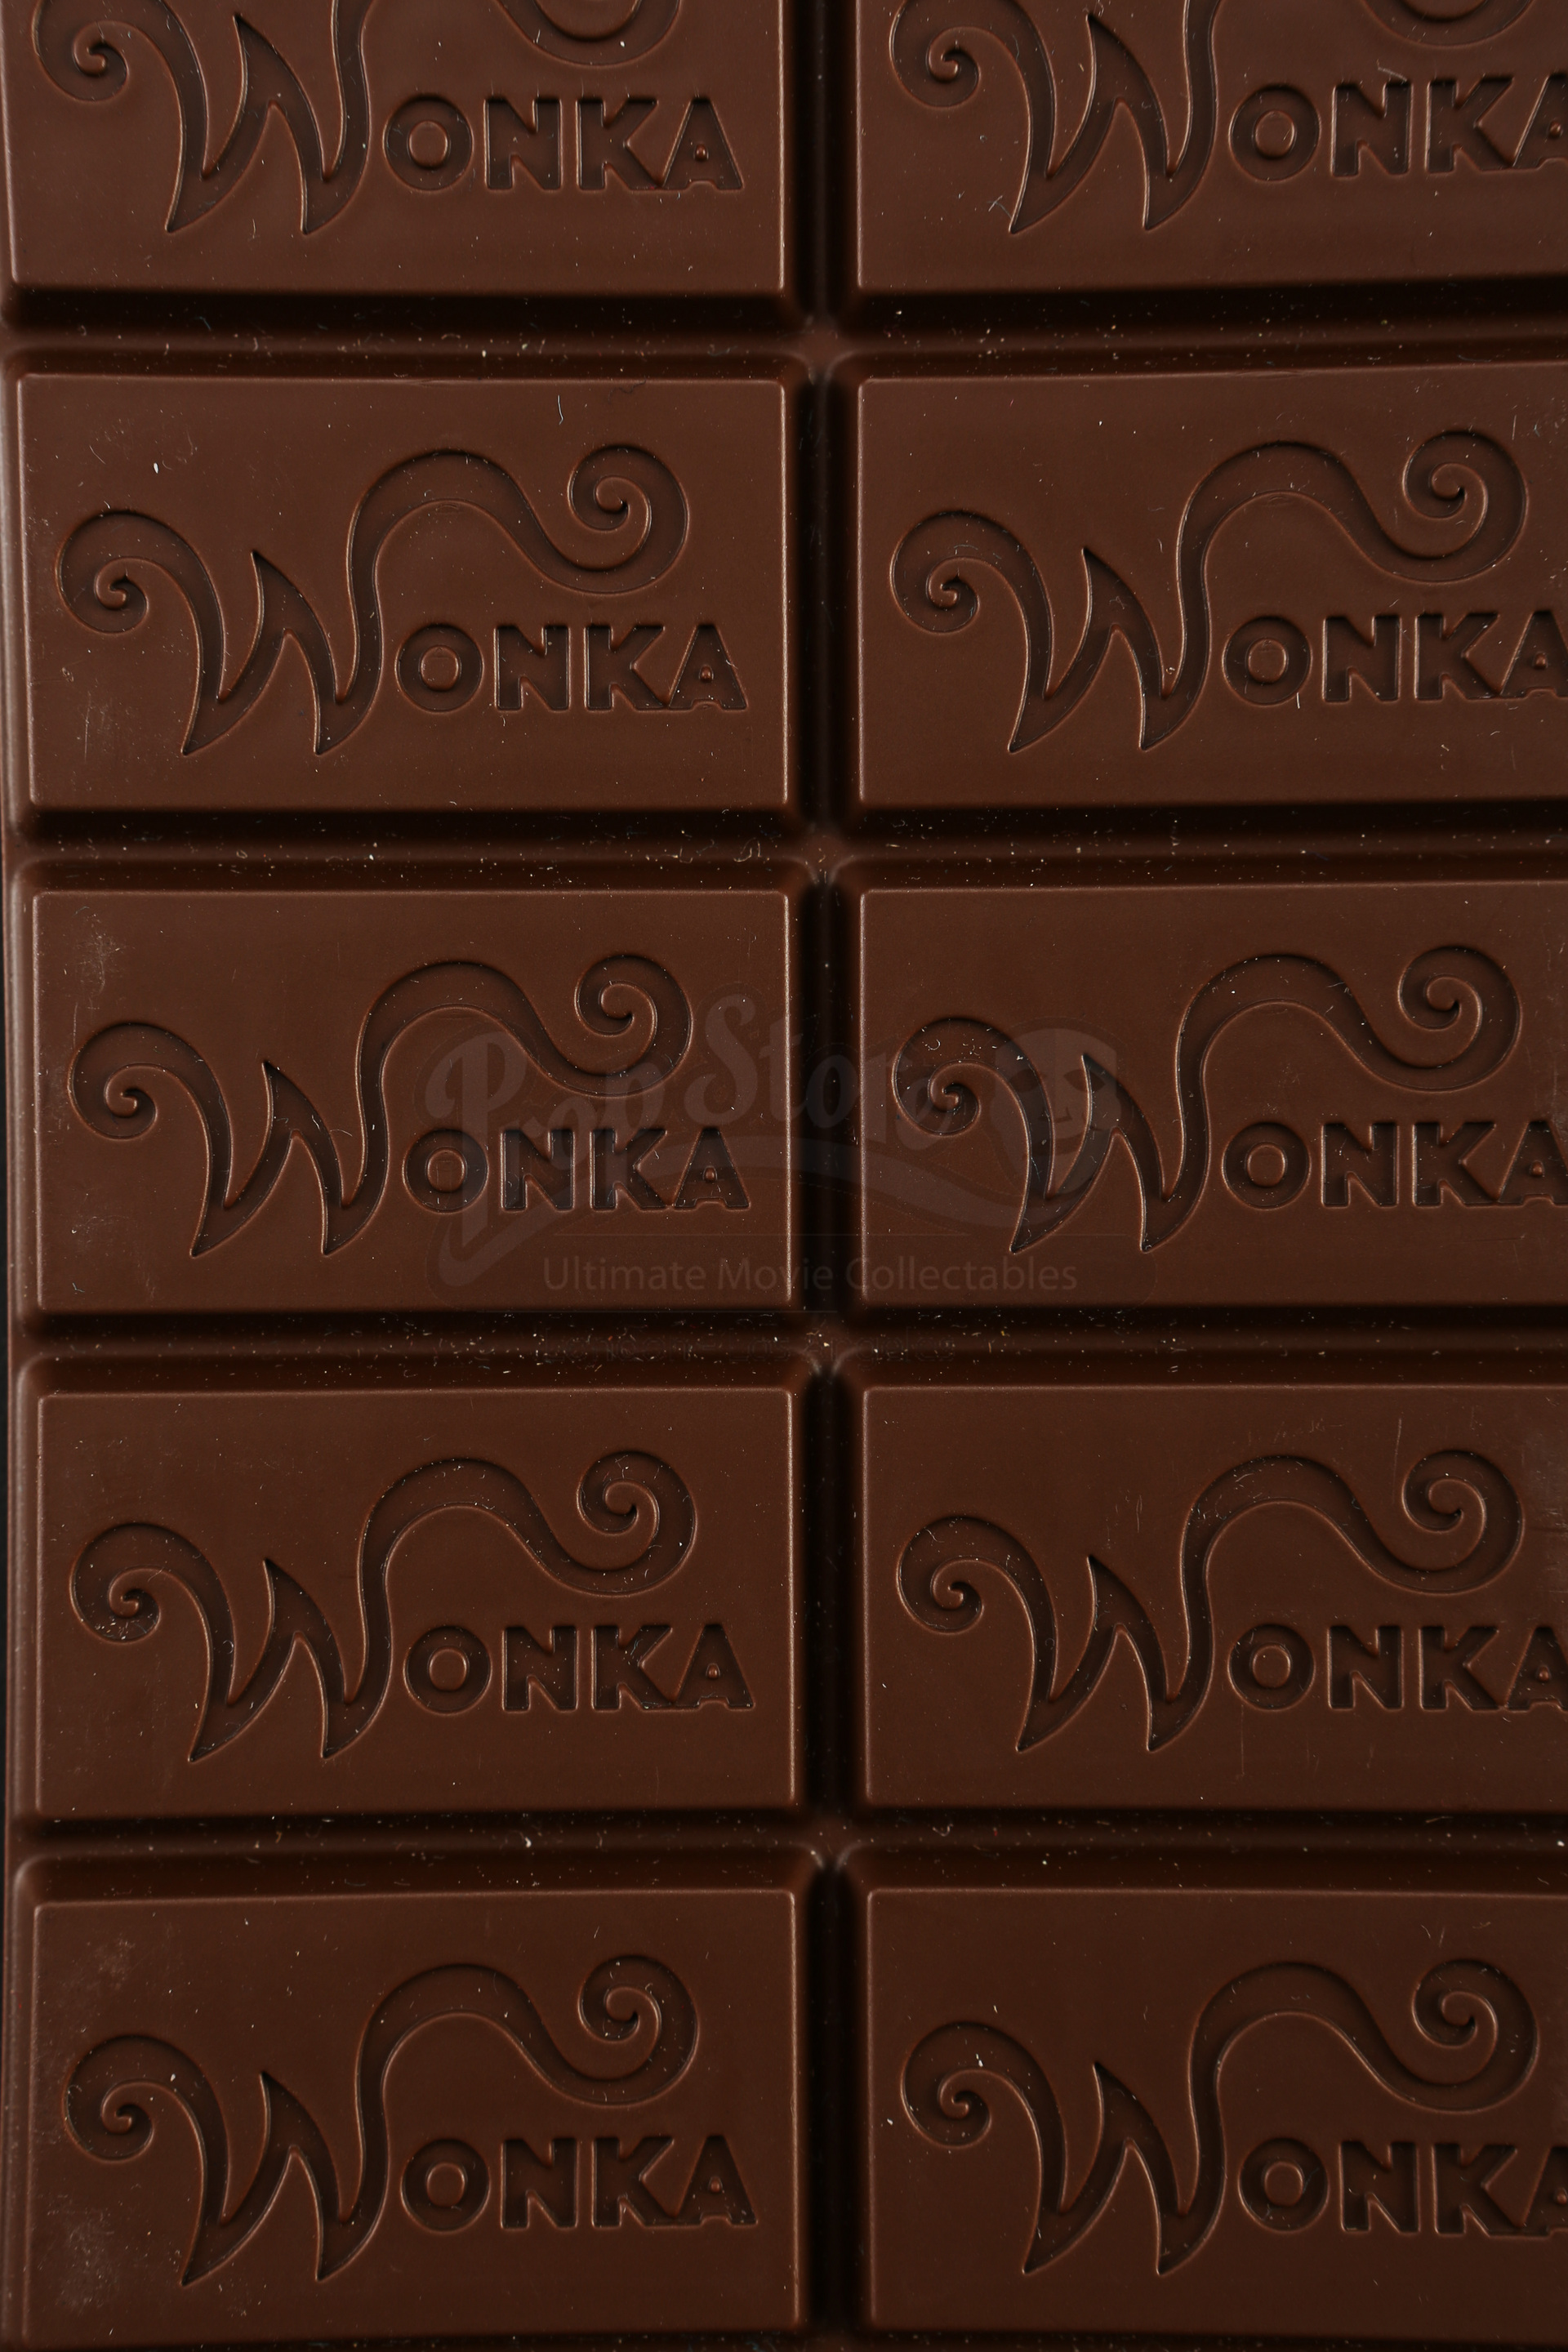 Unwrapped Wonka Chocolate | Prop Store - Ultimate Movie Collectables